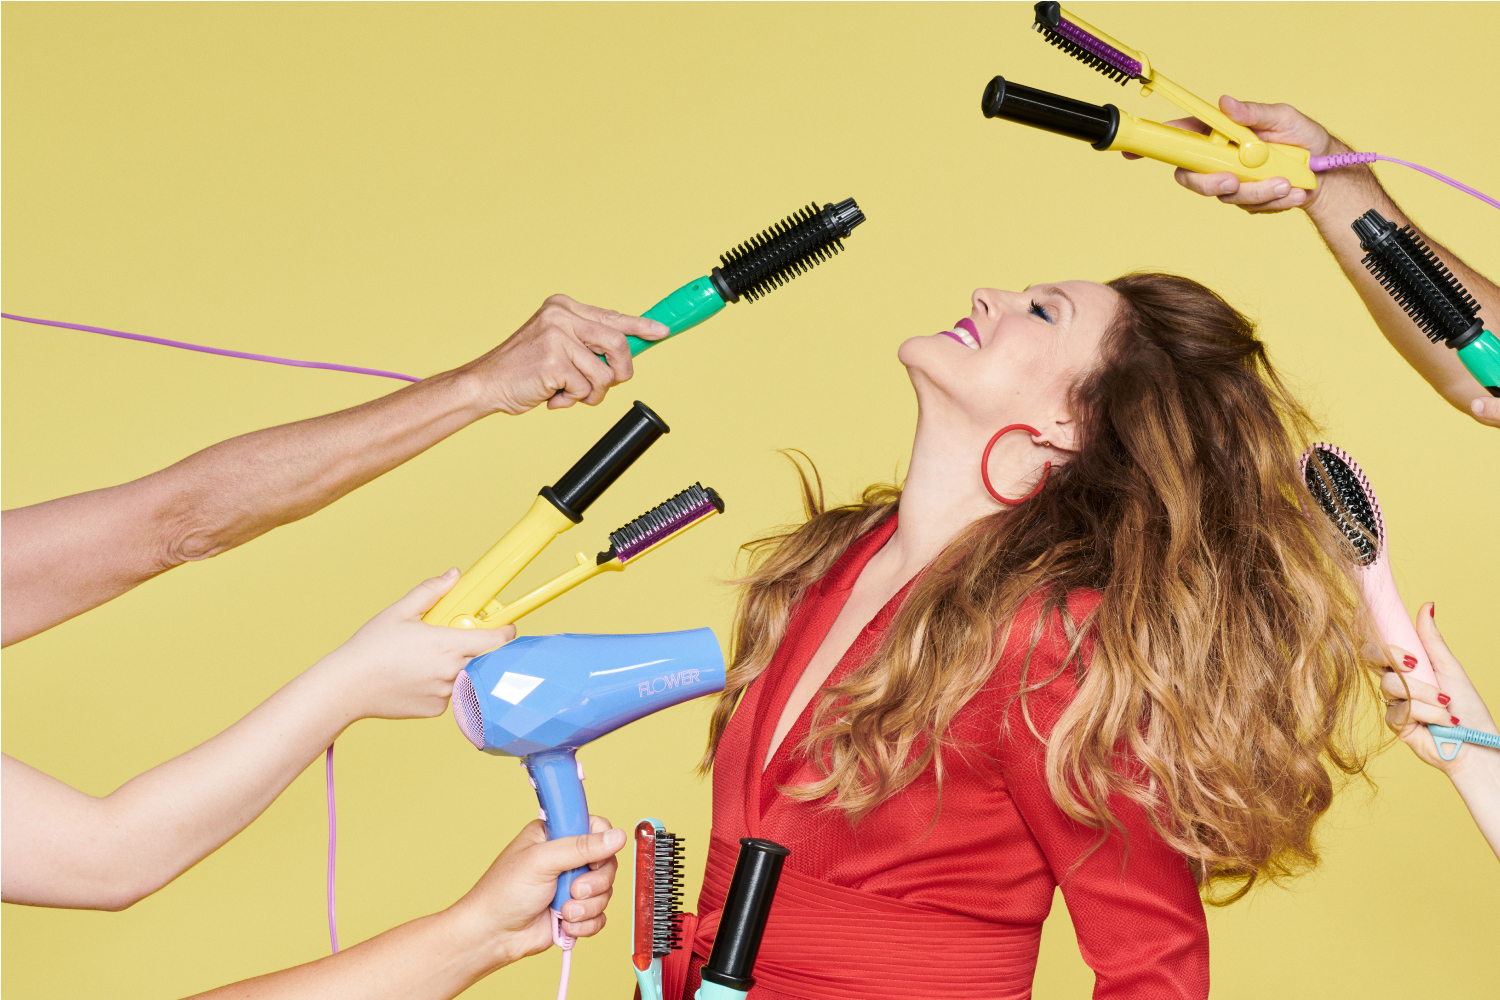 Drew Barrymore's Hair Tool